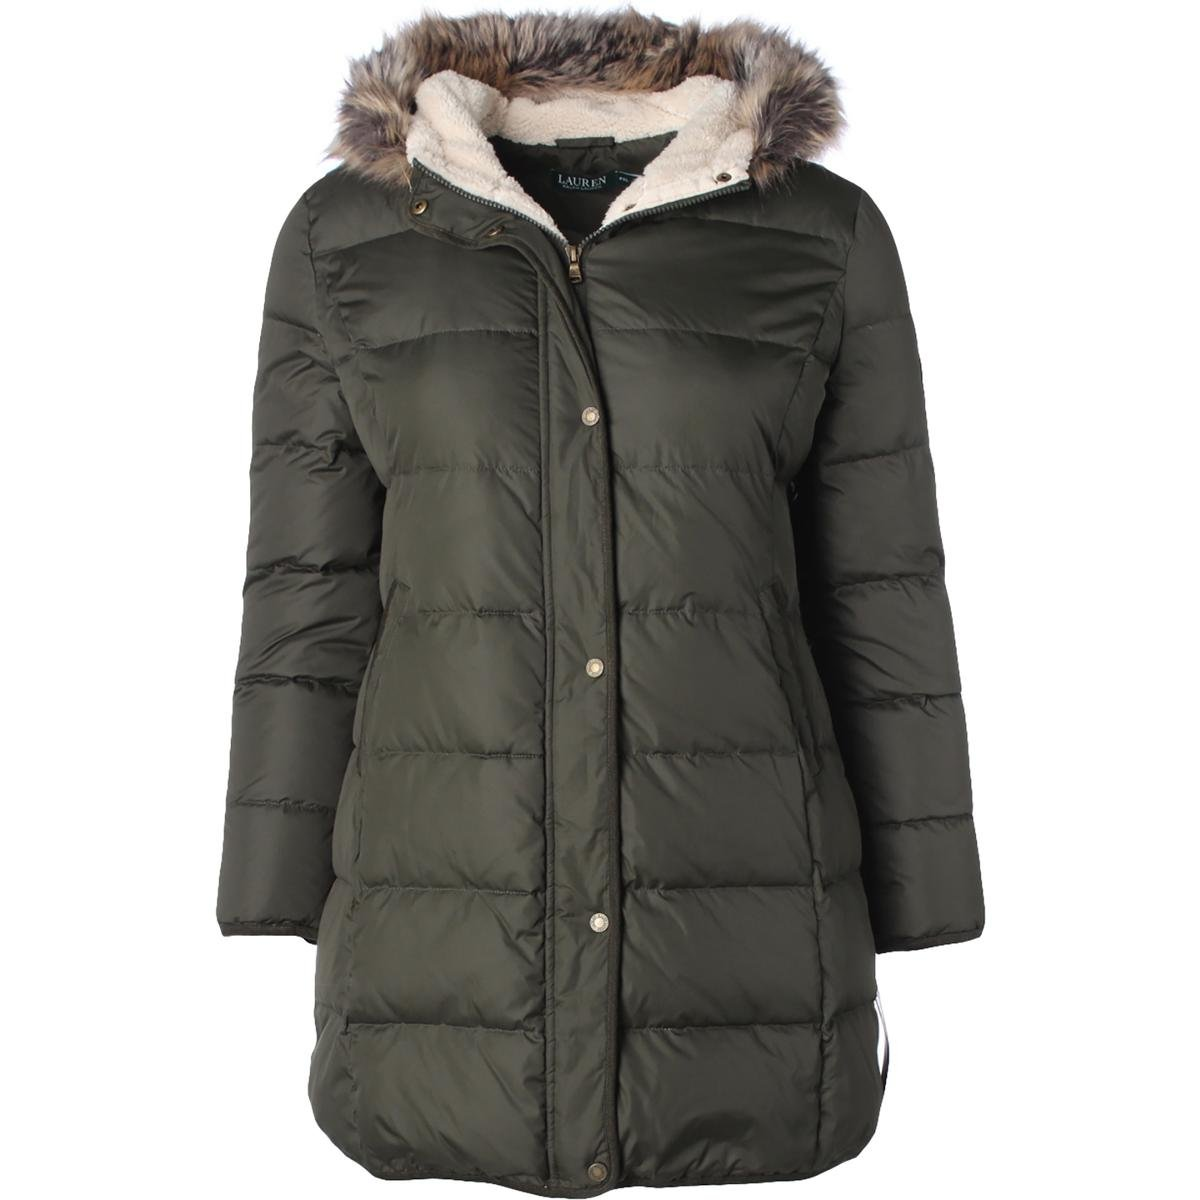 Lauren Ralph Lauren Womens Petites Faux Fur Hooded Puffer Coat Green PXL by Lauren by Ralph Lauren